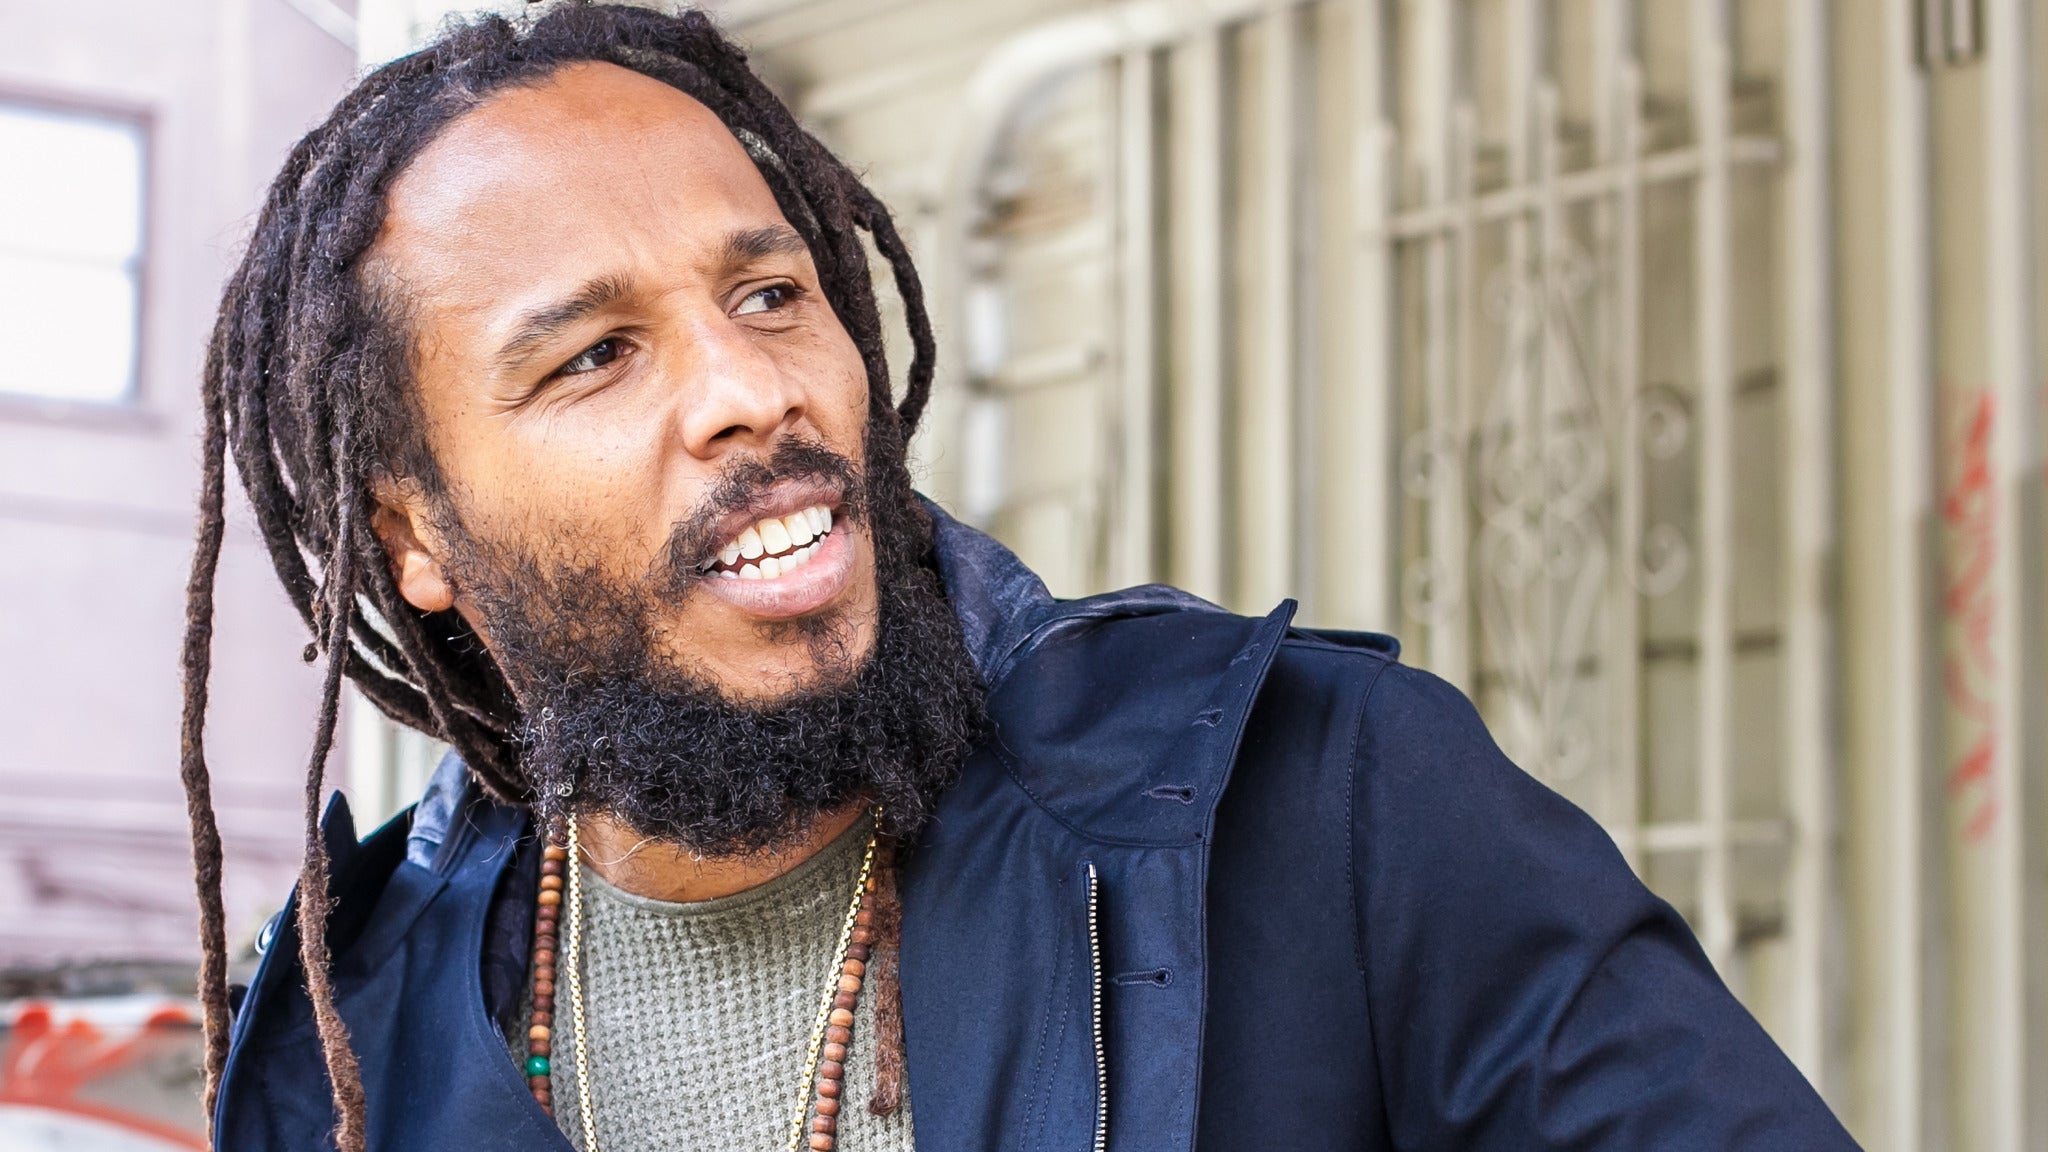 Ziggy Marley at Weesner Family Amphitheater